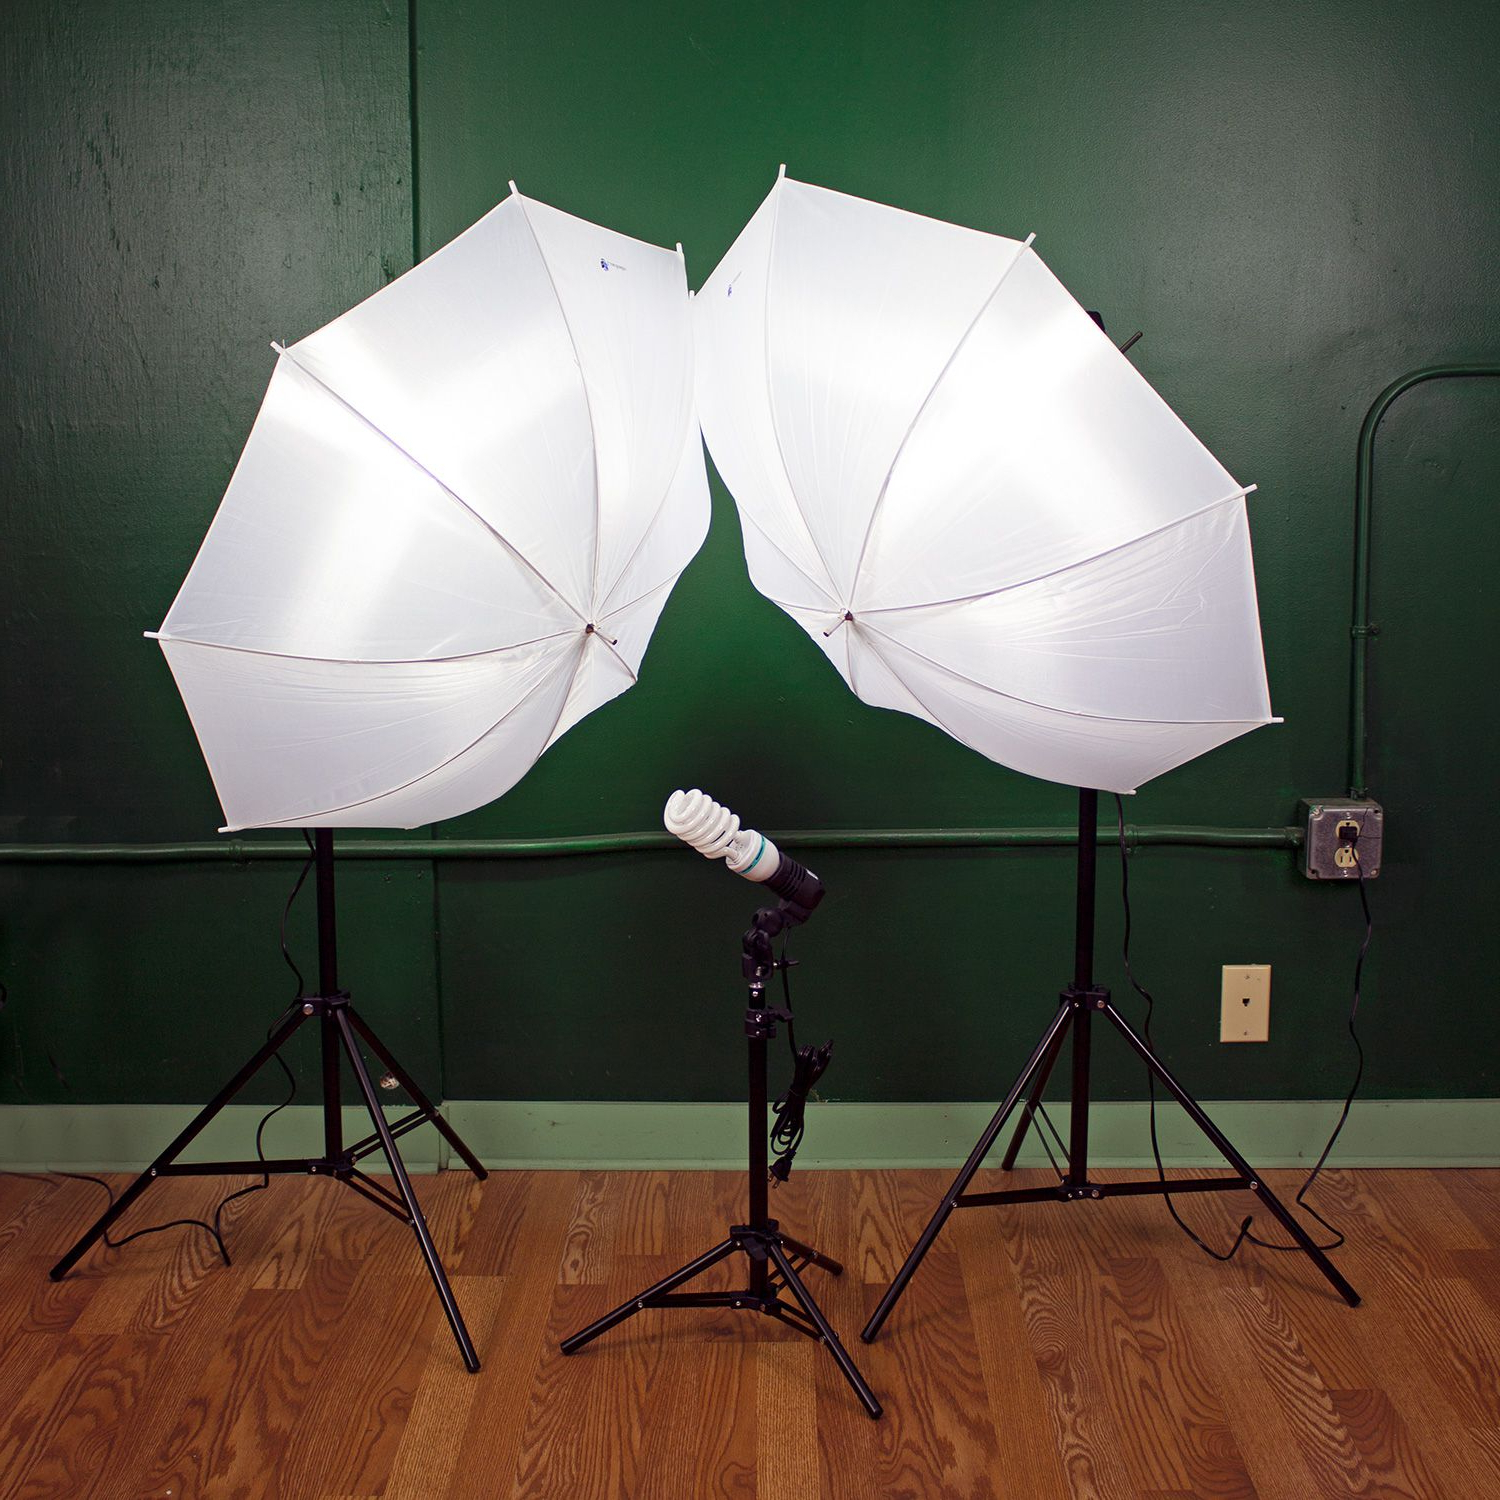 Zeman Market Umbrellas Throughout Well Liked Limostudio Lms103 Lighting Kit Review (View 17 of 20)